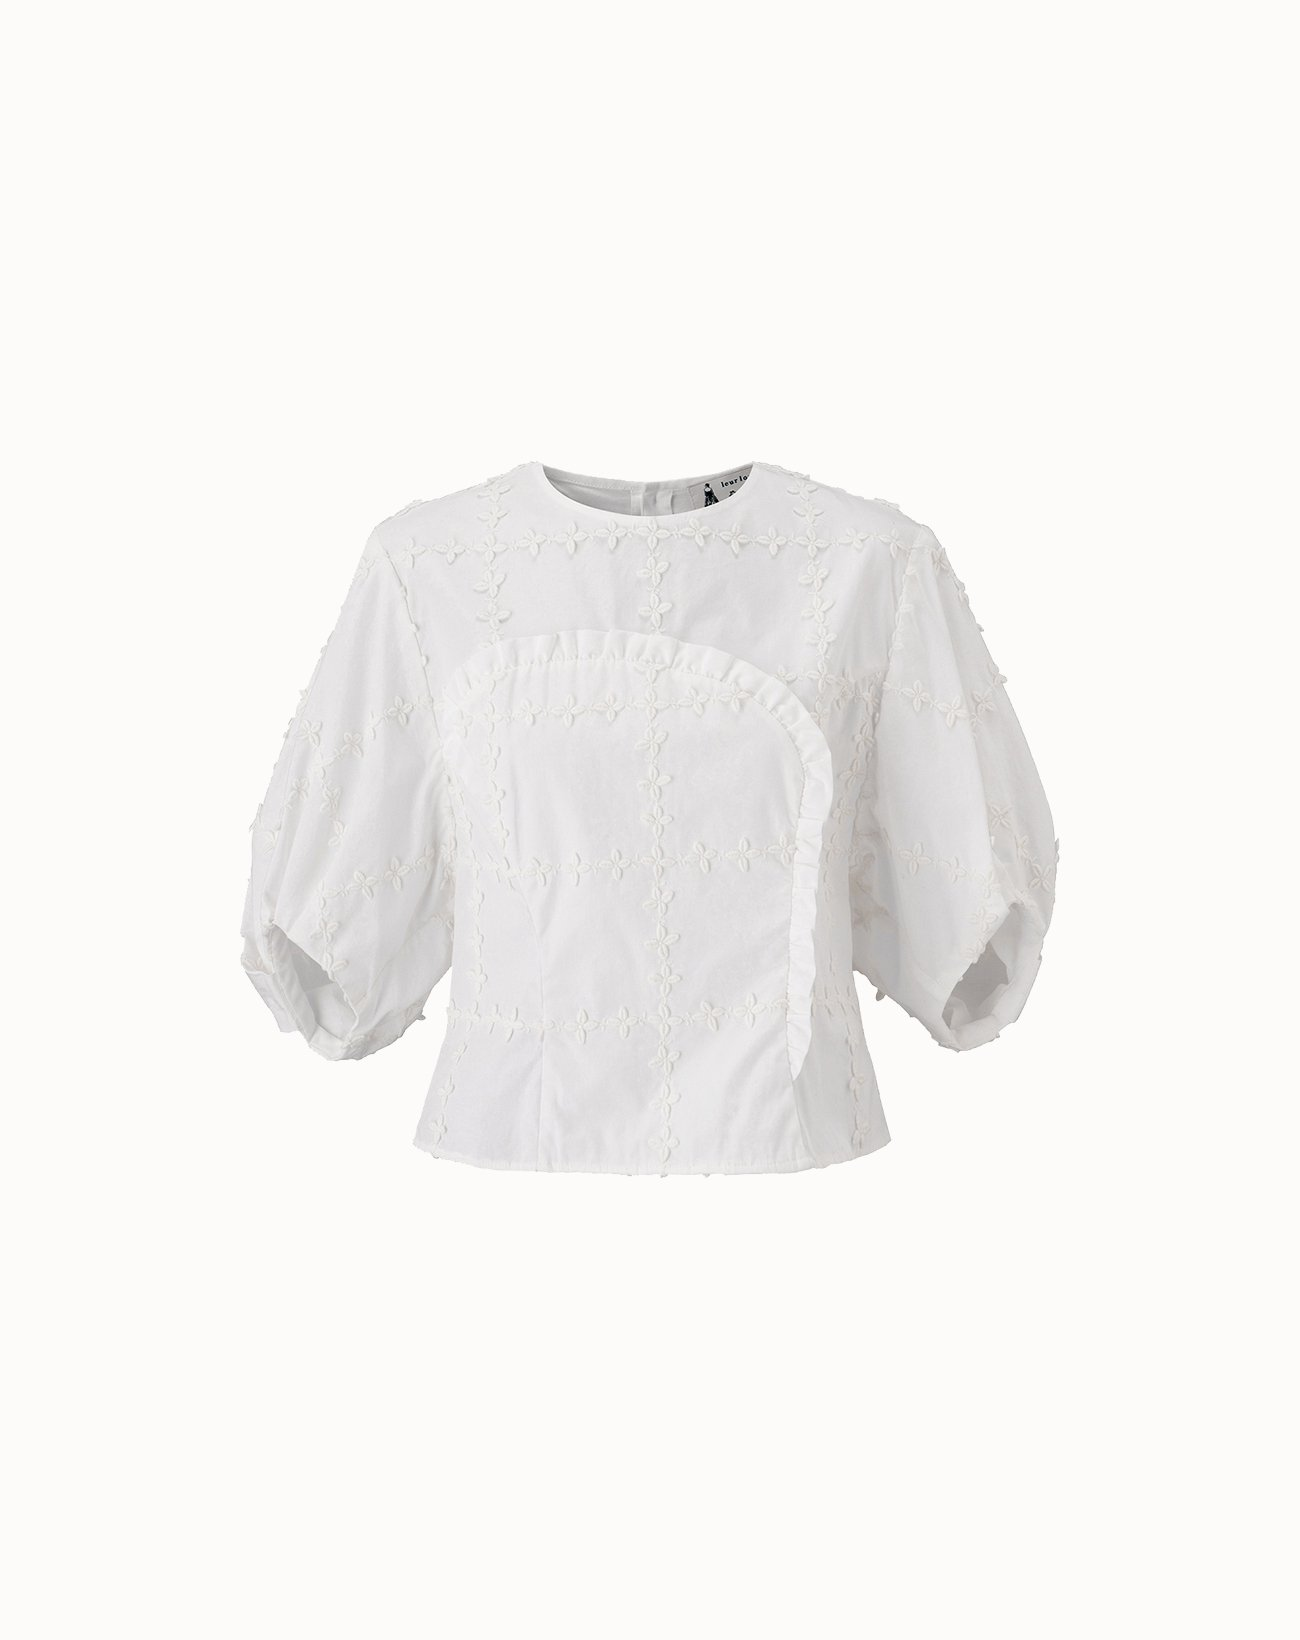 leur logette - Check Flower Embroidery Blouse - White